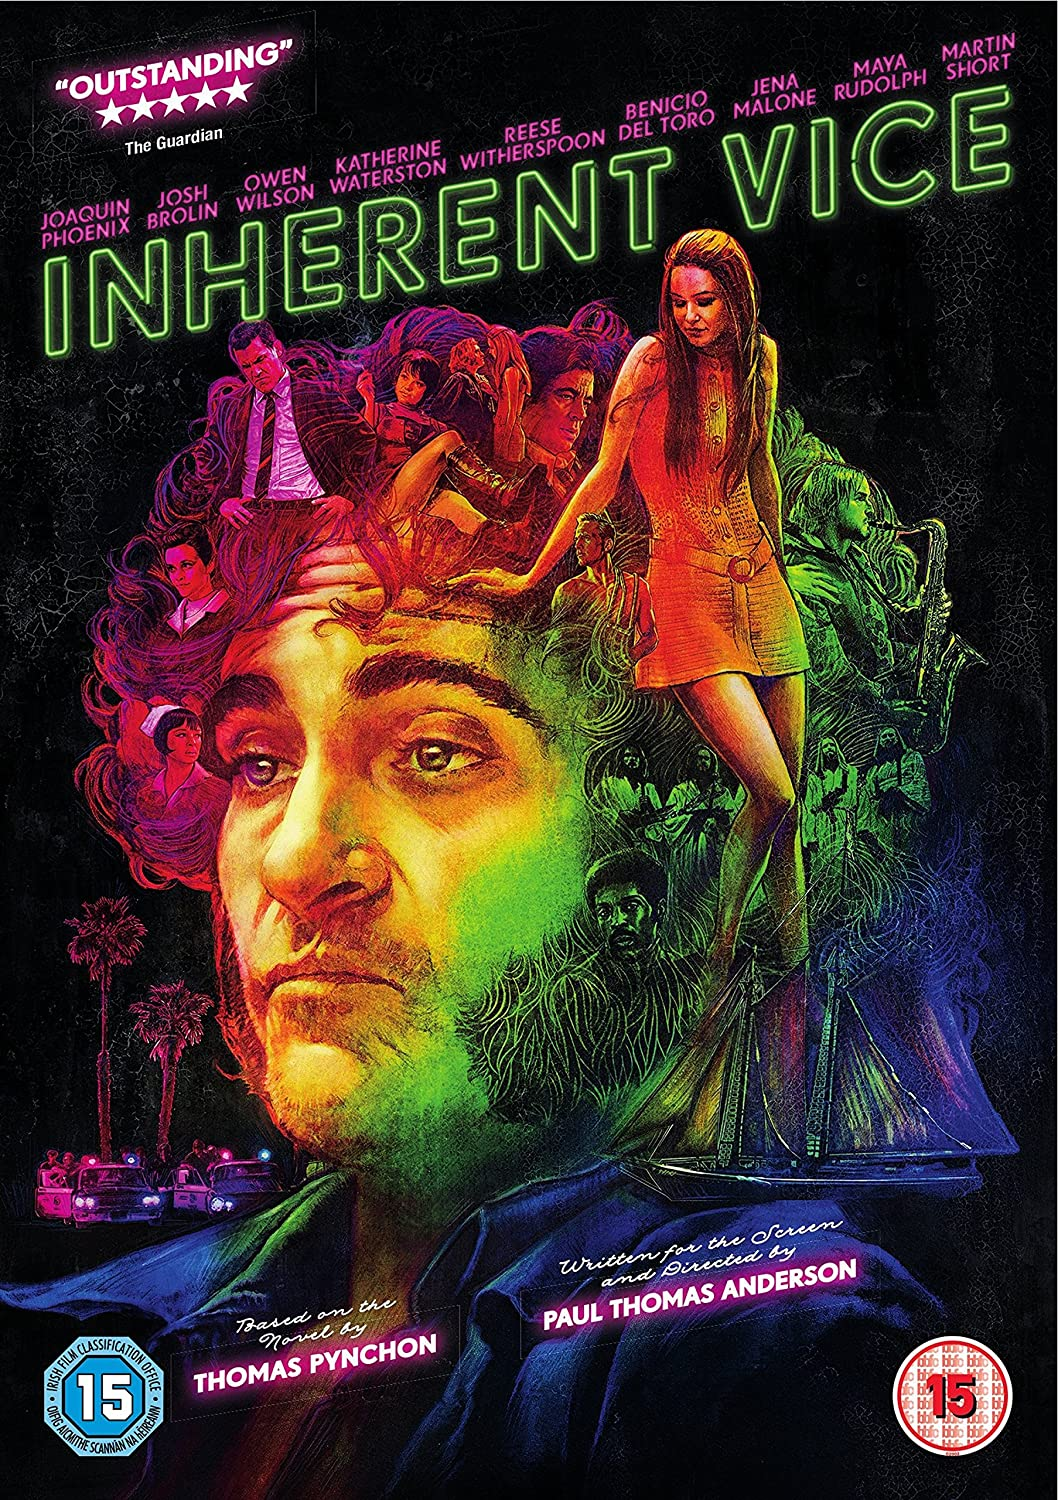 iNHERENT ViCE Joaquin Phoenix Detective Reese Witherspoon LARGE French POSTER